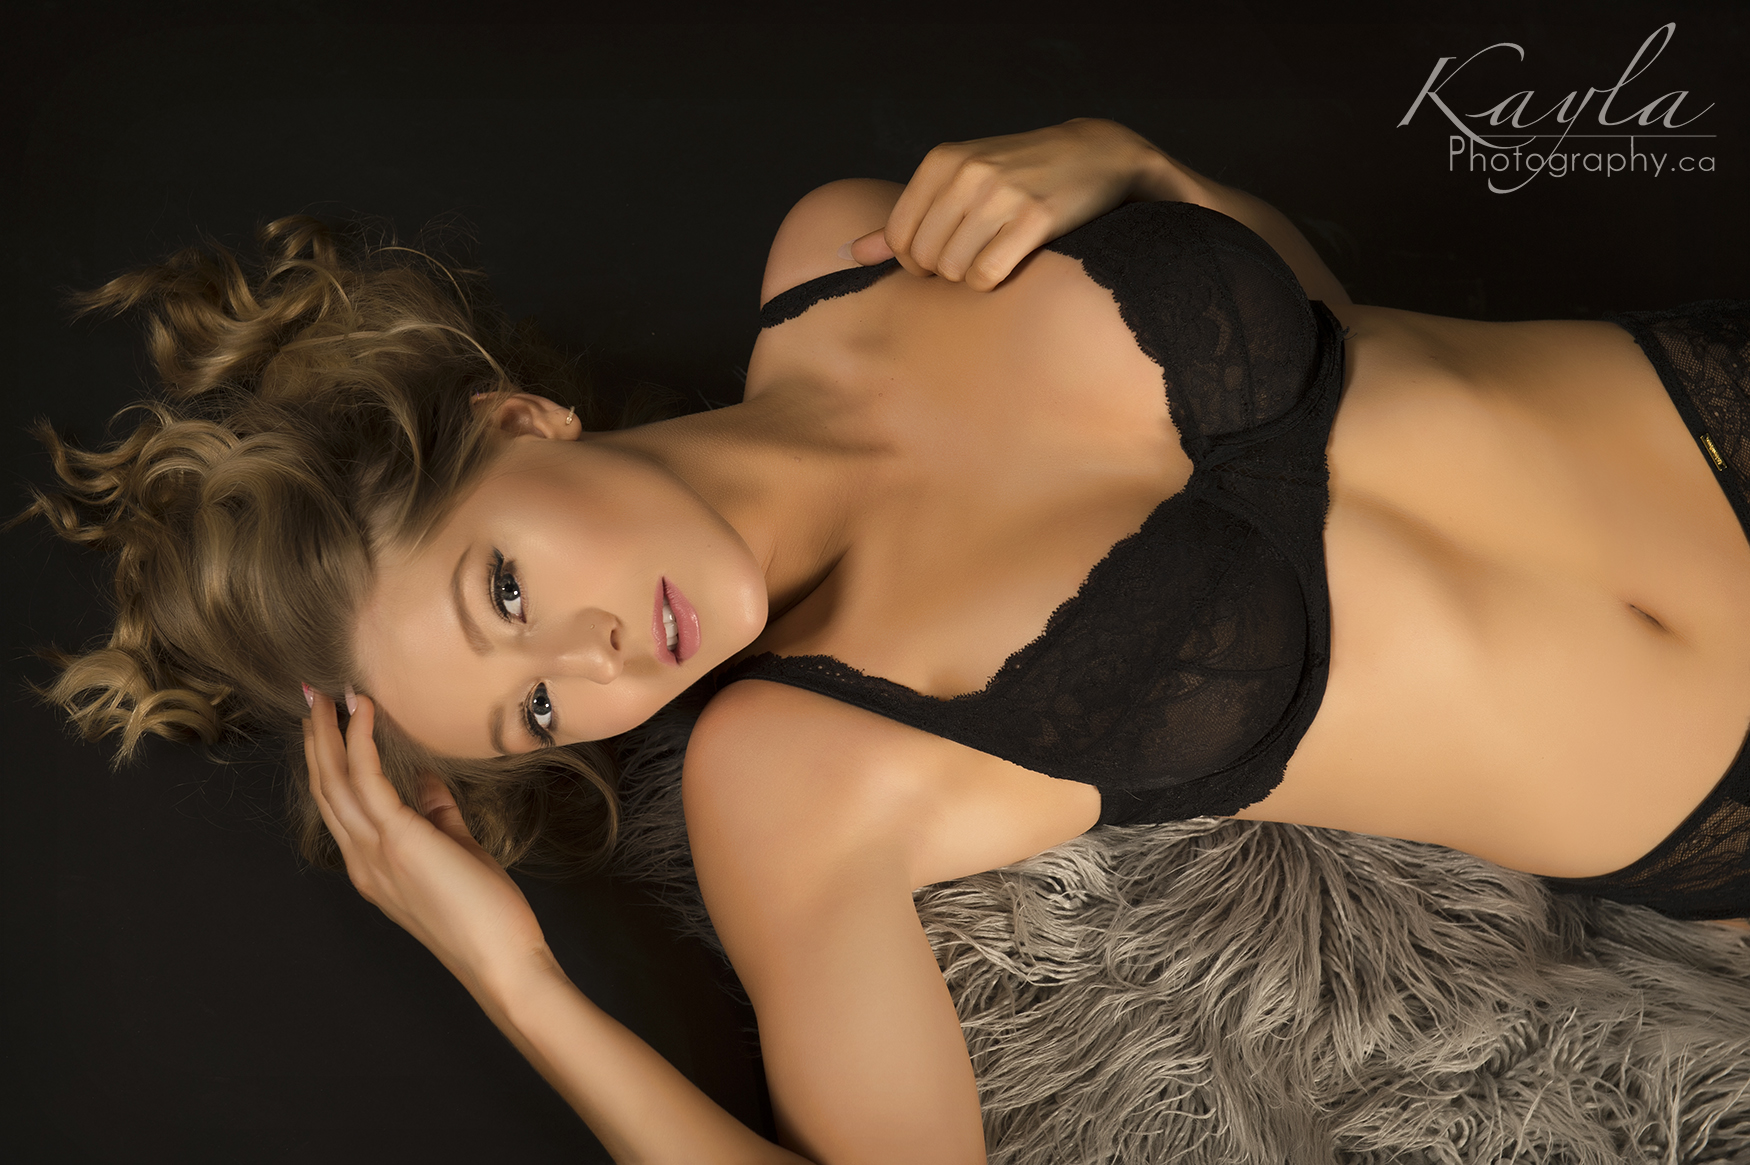 ottawa boudoir photography